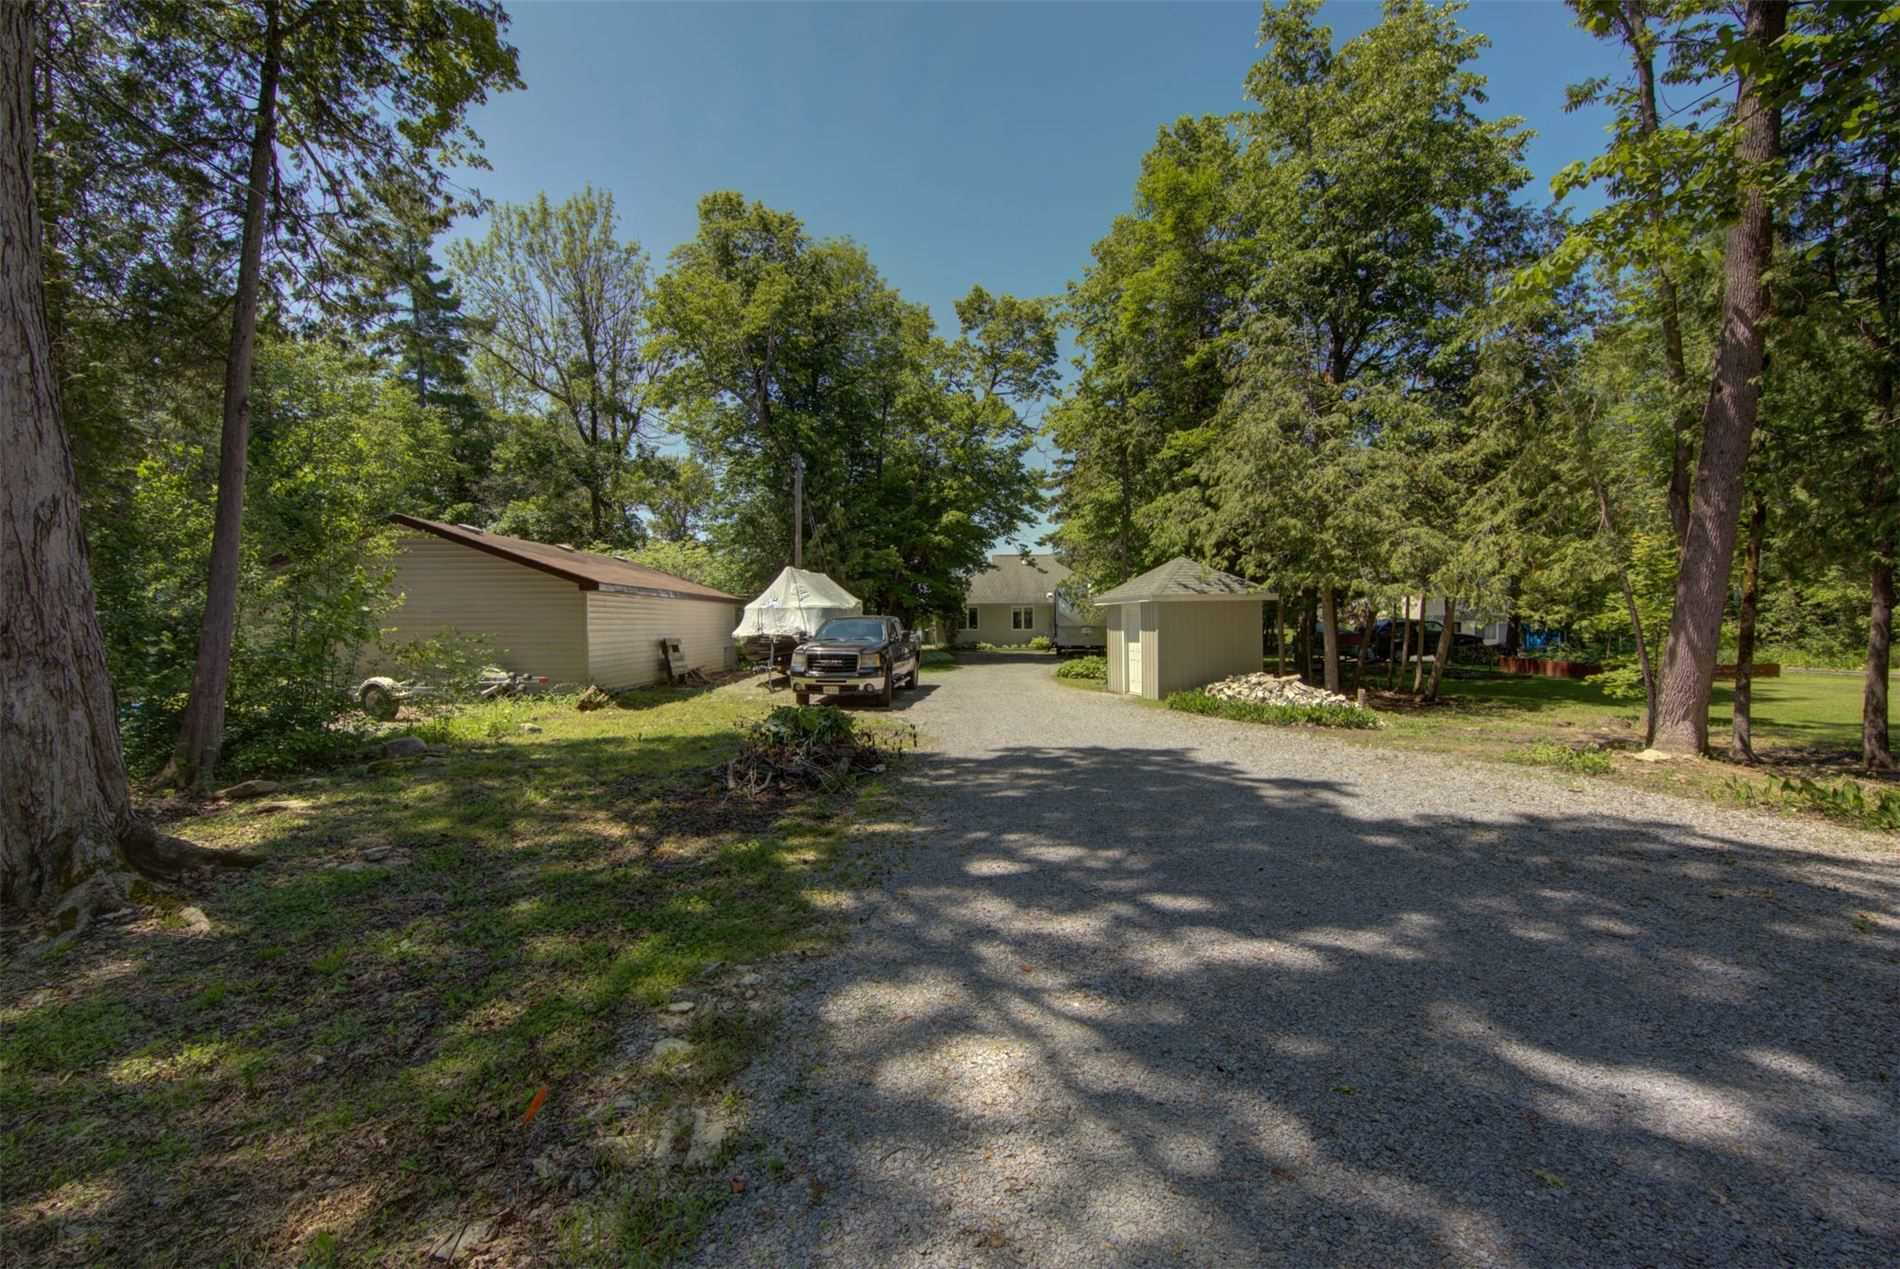 pictures of house for sale MLS: X4765097 located at 168 Sturgeon Glen Rd, Kawartha Lakes K0M1N0